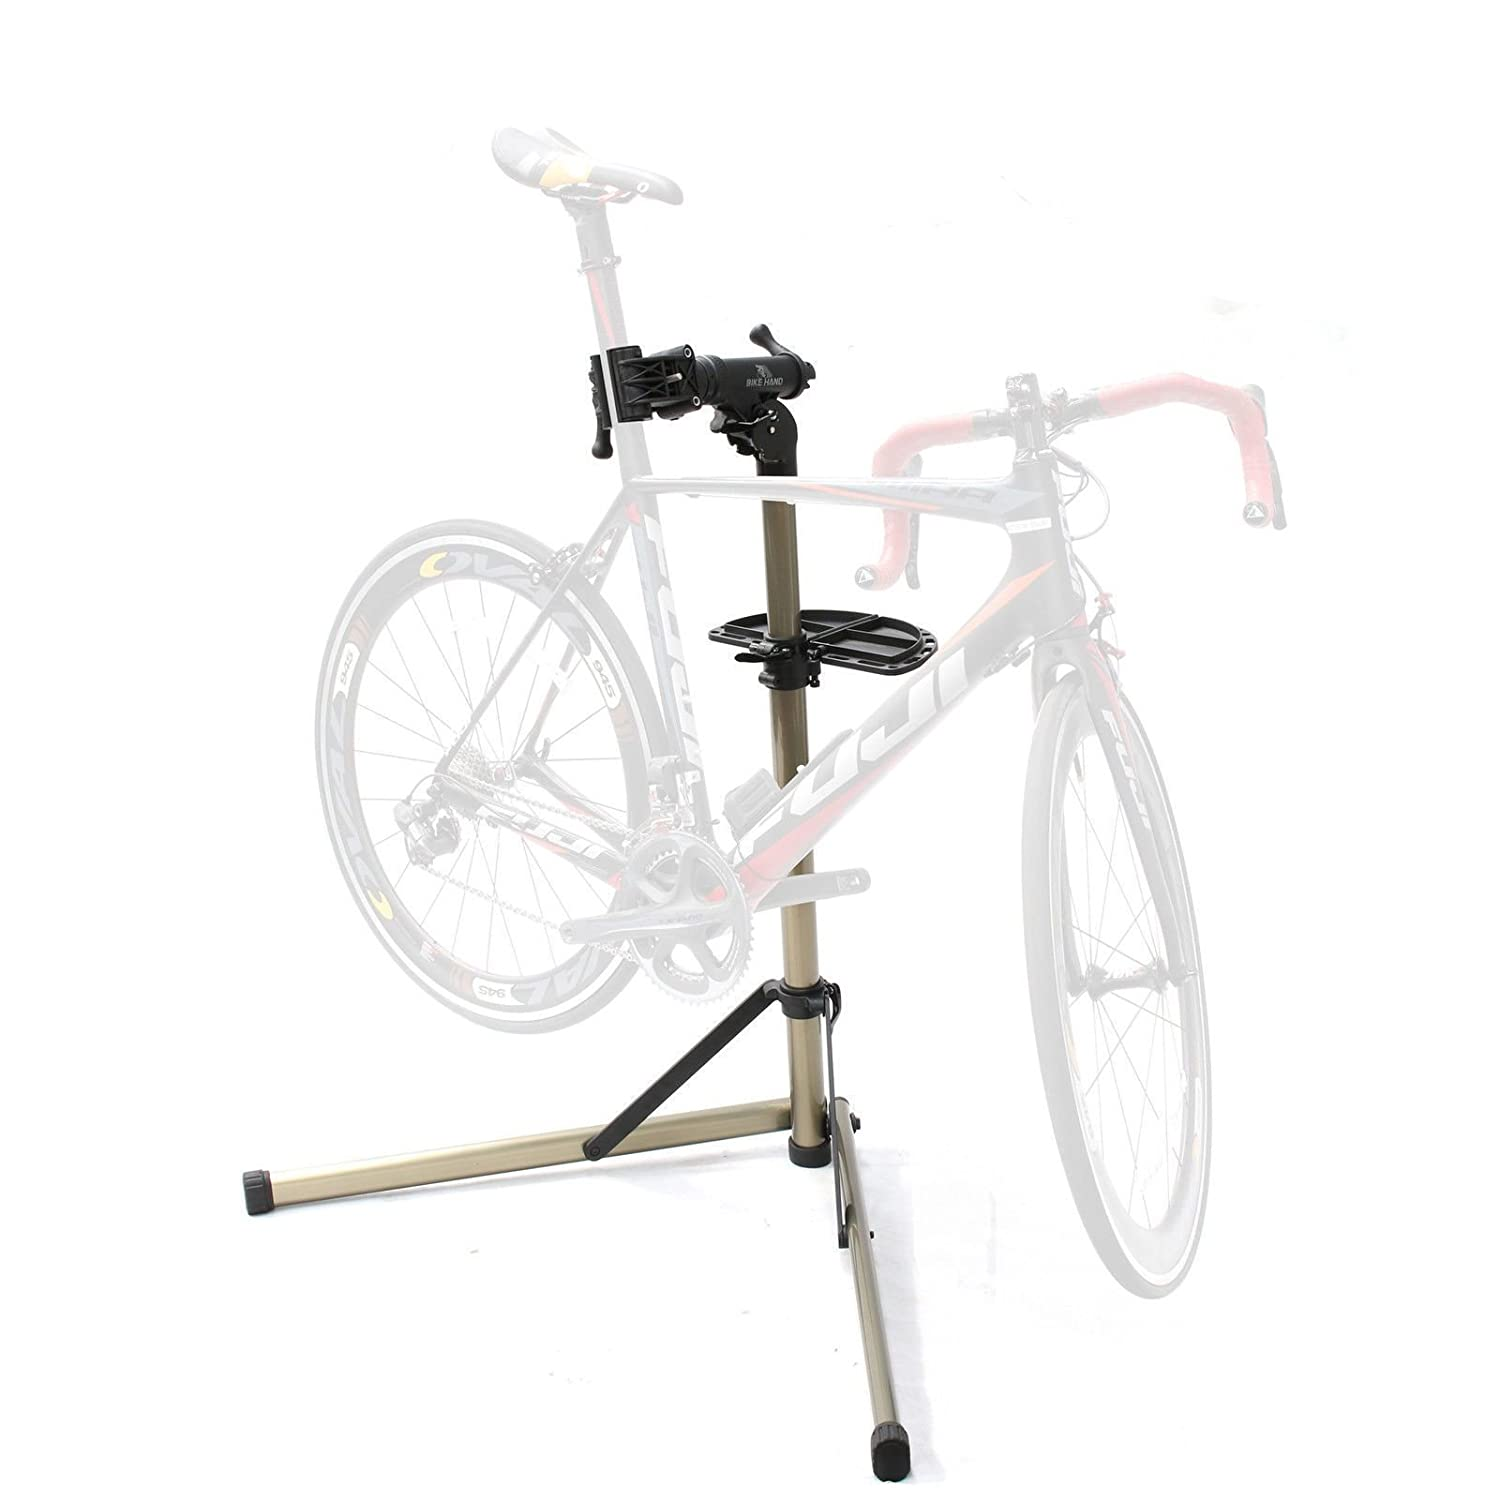 Cycle Pro Mechanic Bicycle Repair Stand rack Bike: Amazon.es: Deportes y aire libre